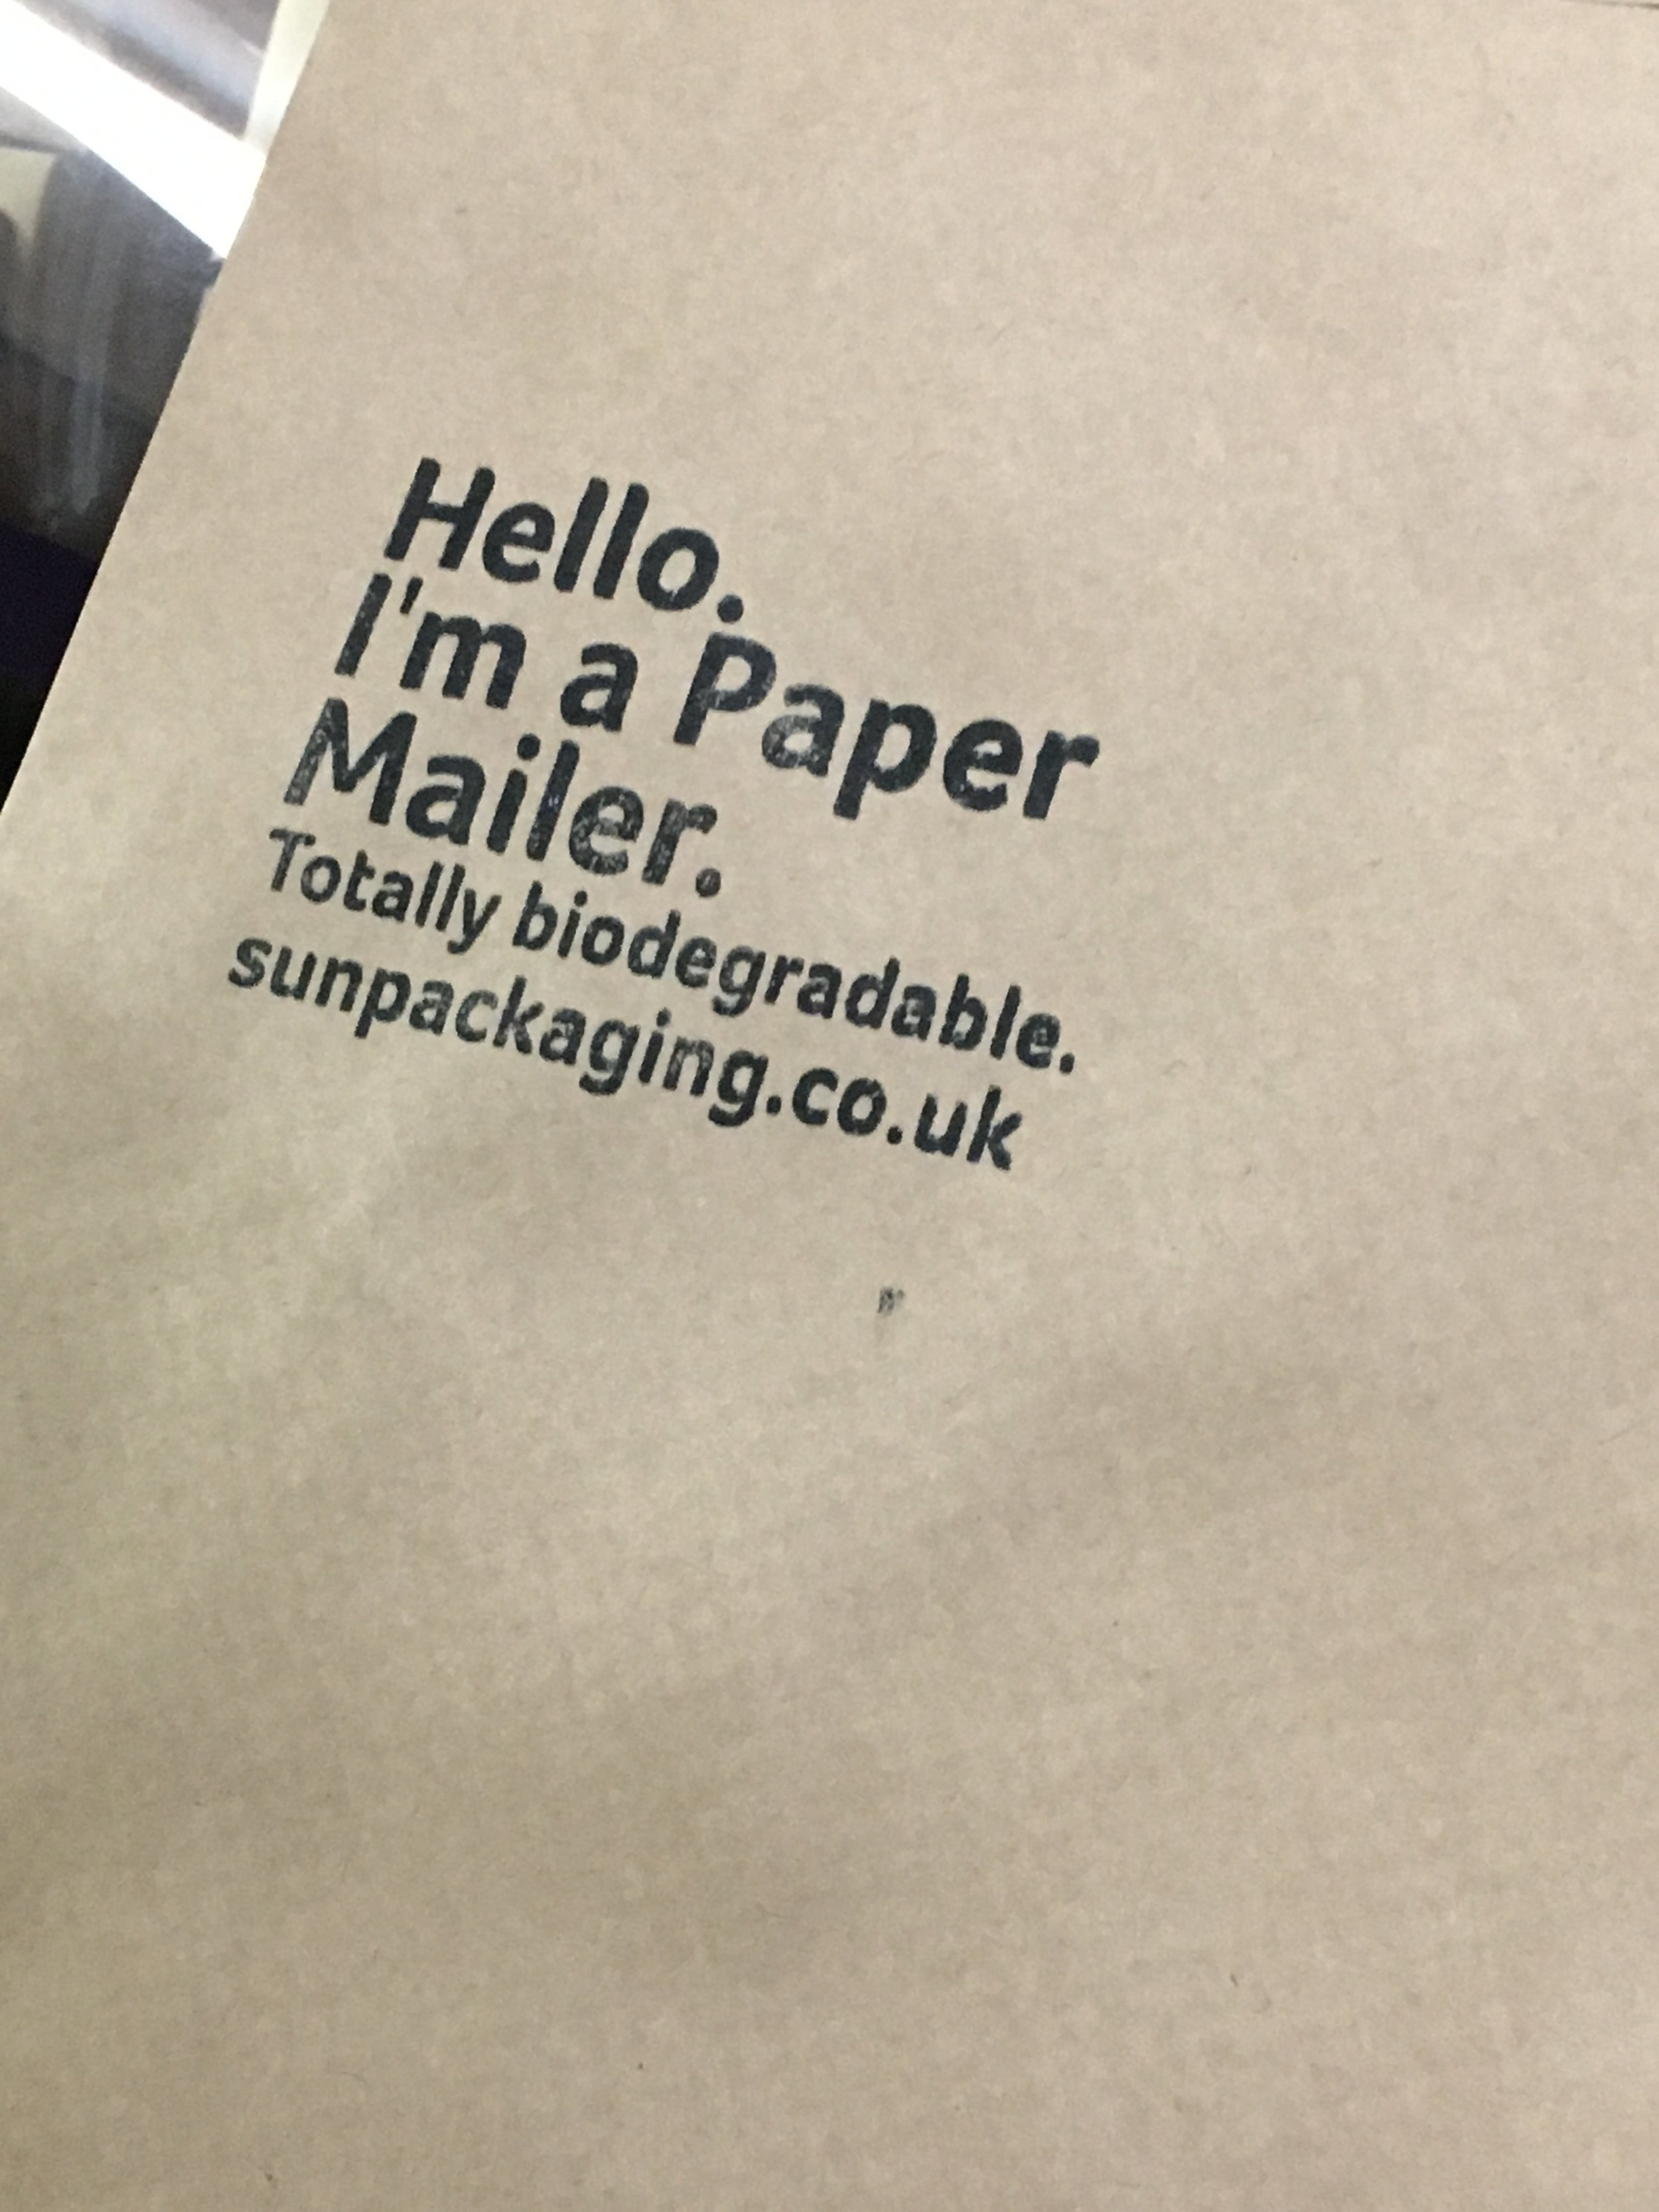 Paper Mailers